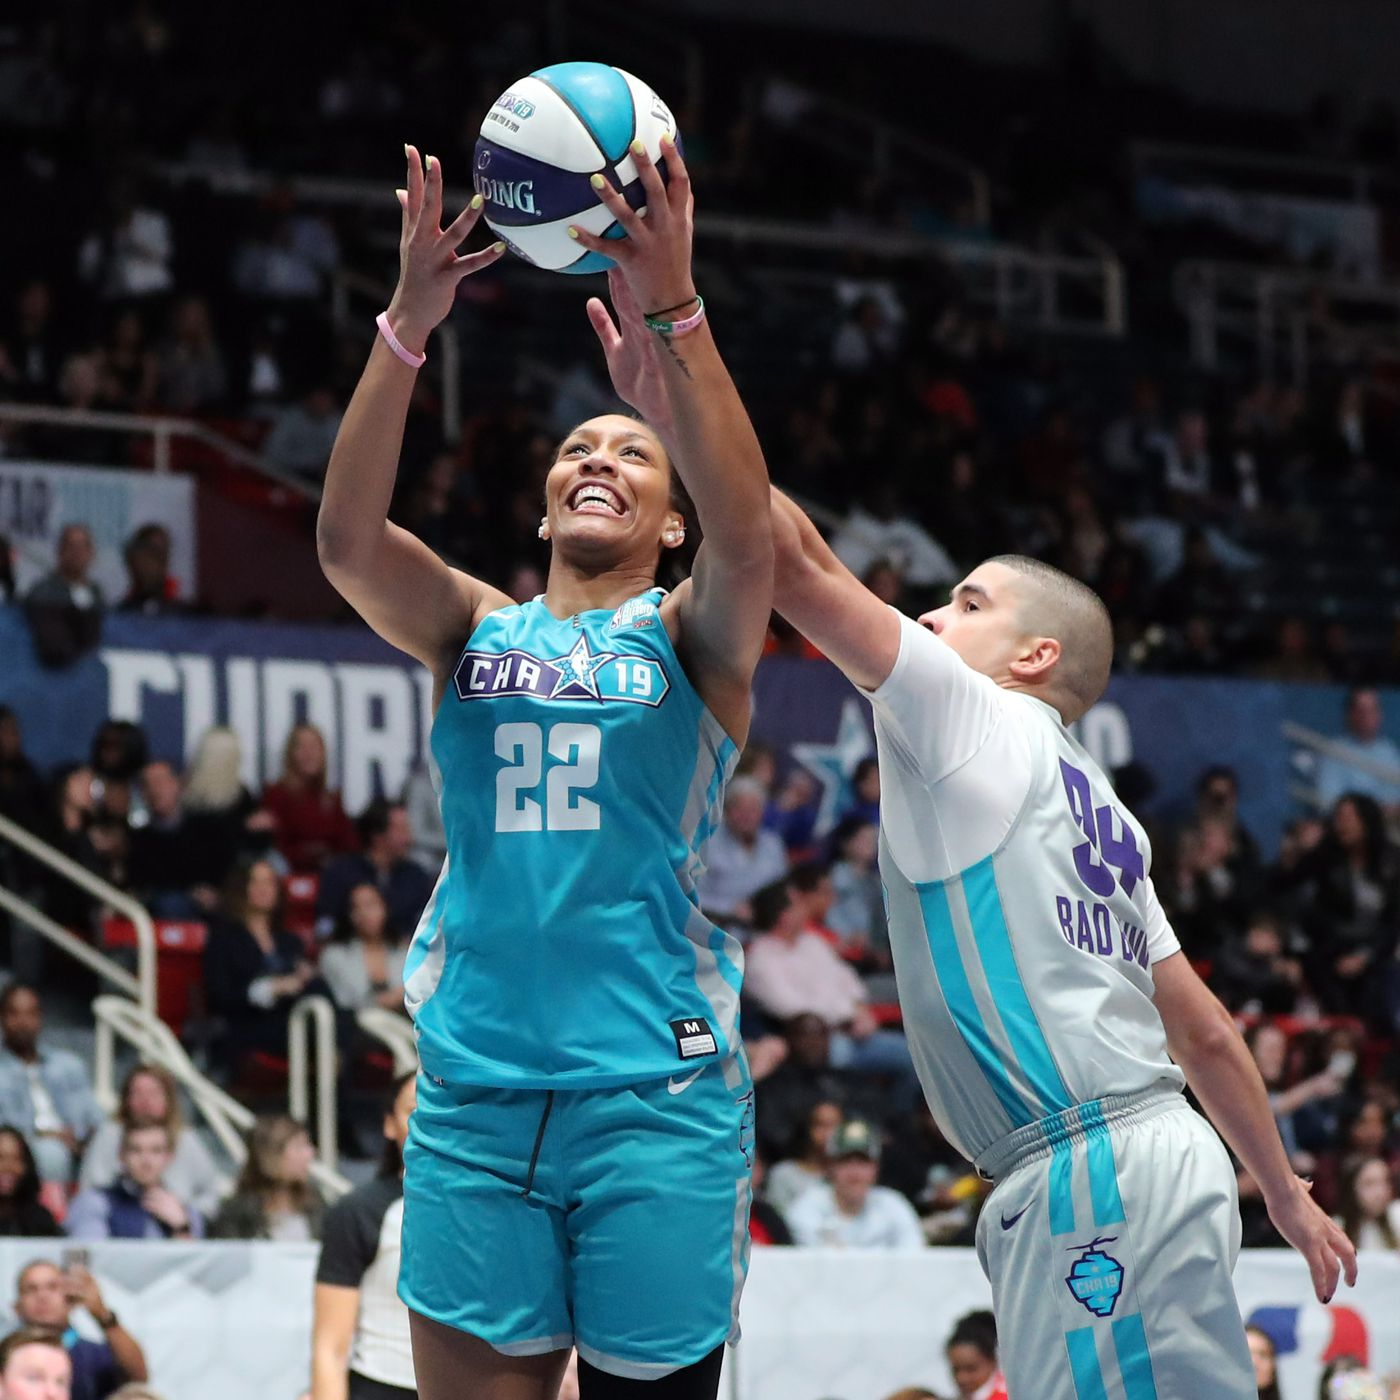 4bc2e89710b Captain Marvel x WNBA issue bold statement during halftime of the 2019 NBA  All-Star Game